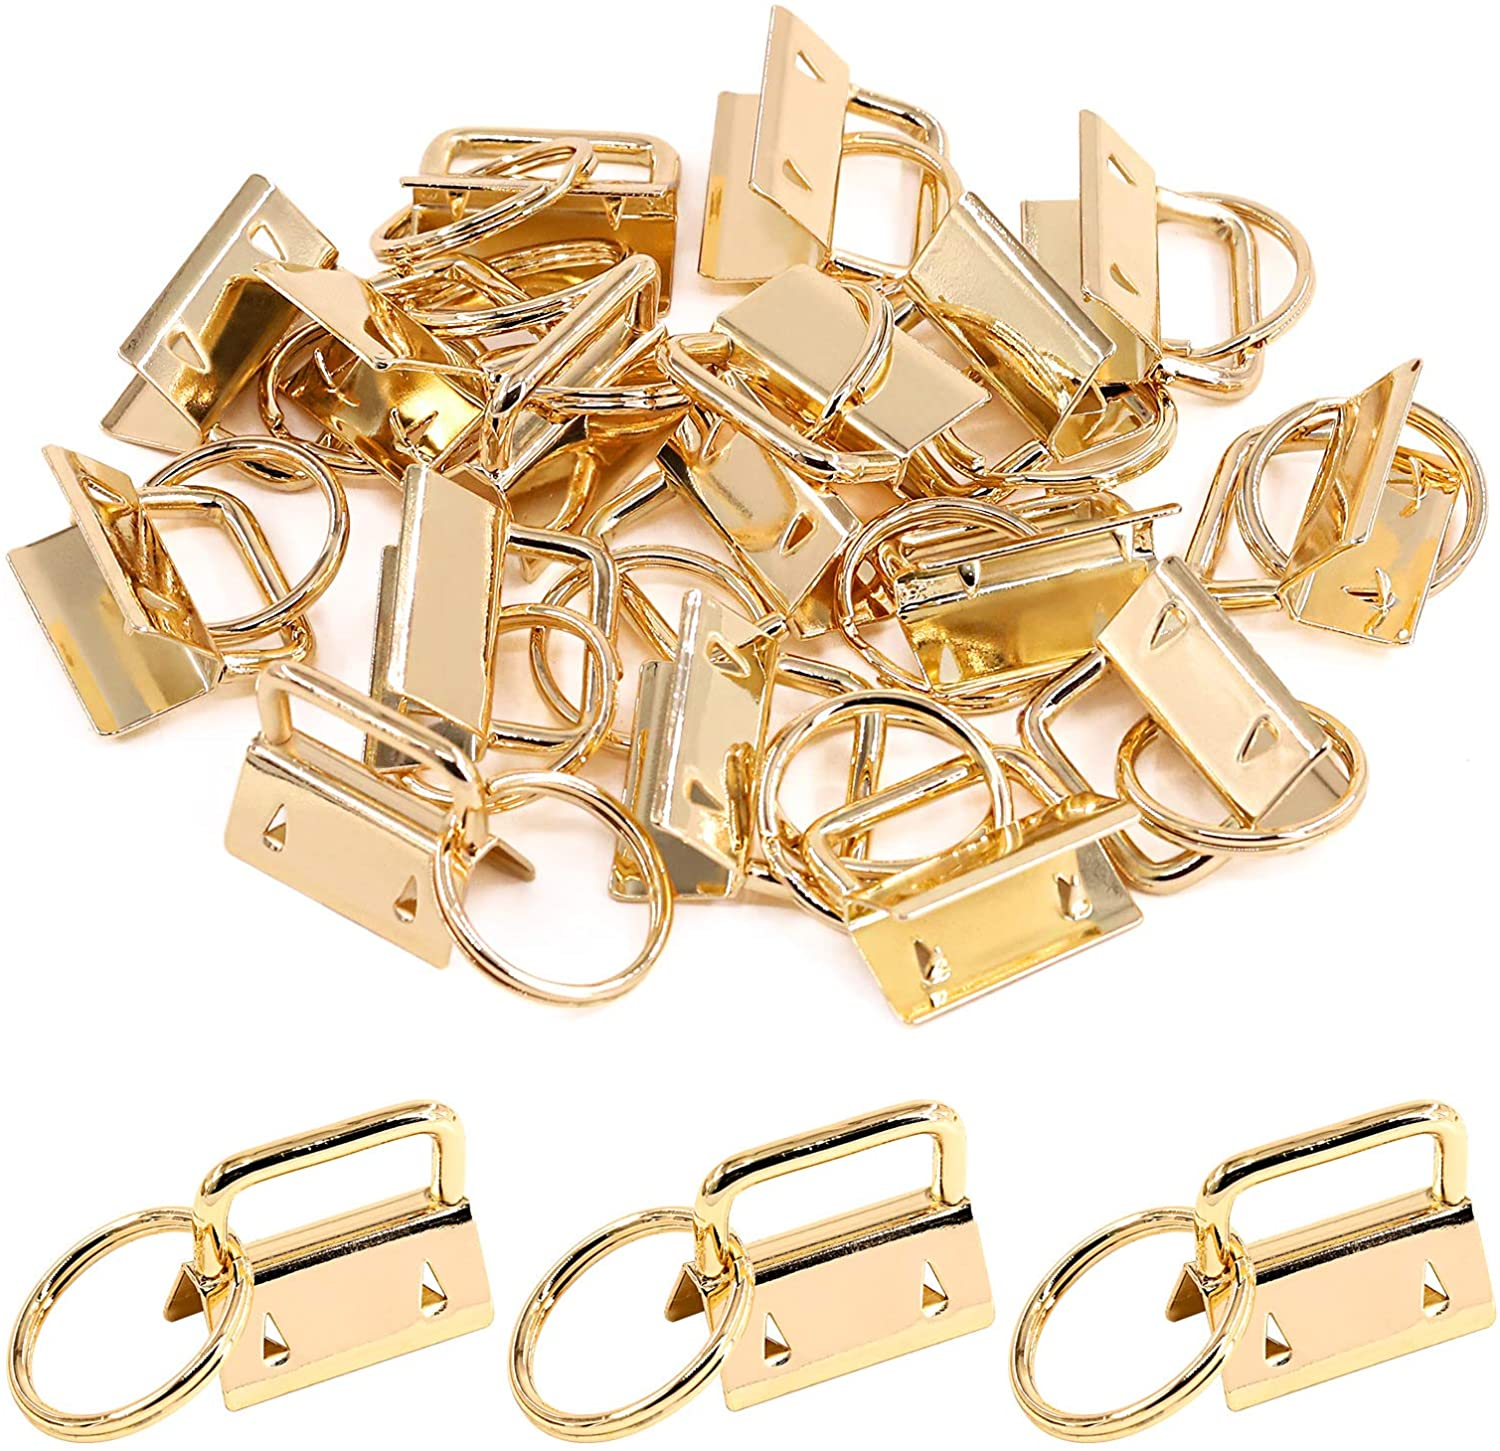 Swpeet 20Pcs Gold 1 Inch Key Fob Hardware with Key Rings Sets, Perfect for Bag Wristlets with Fabric/Ribbon/Webbing/Embossed and Other Hand Craft - 25mm